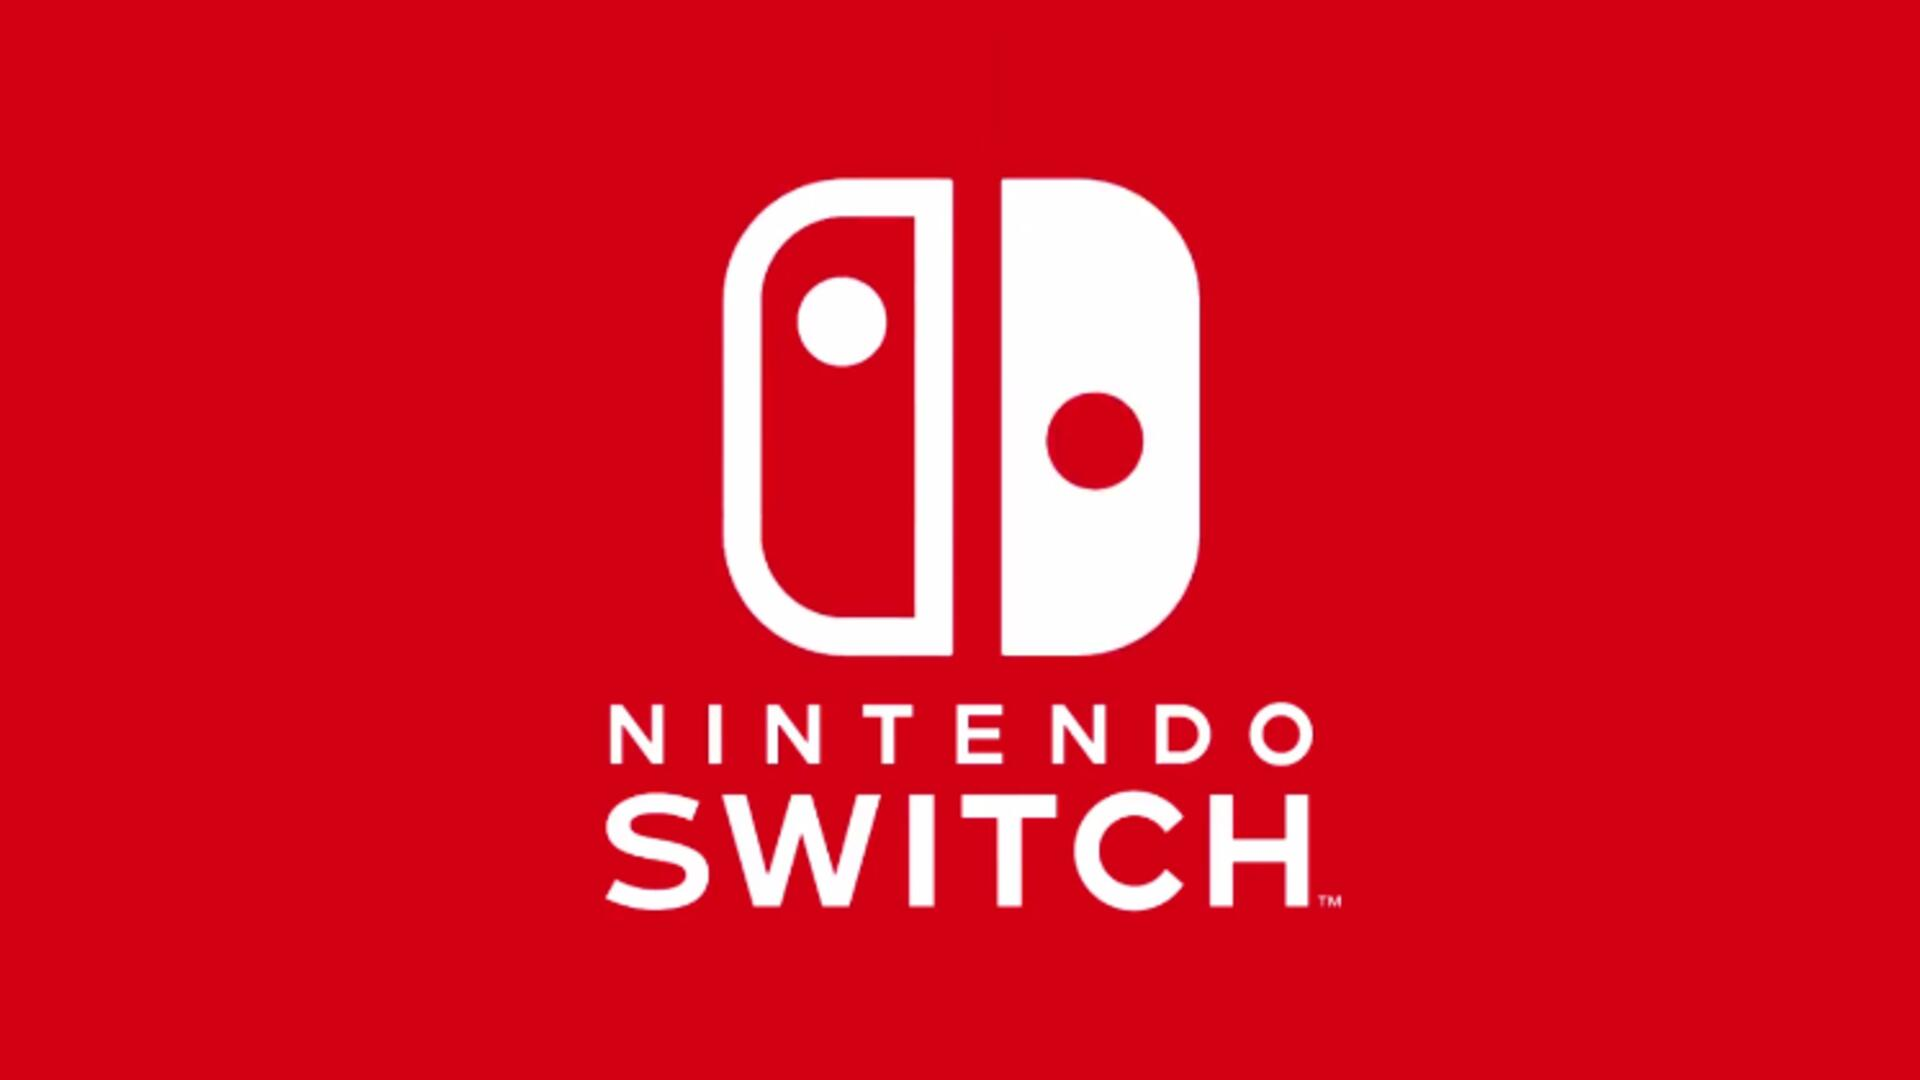 Nintendo NX Revealed as the Nintendo Switch